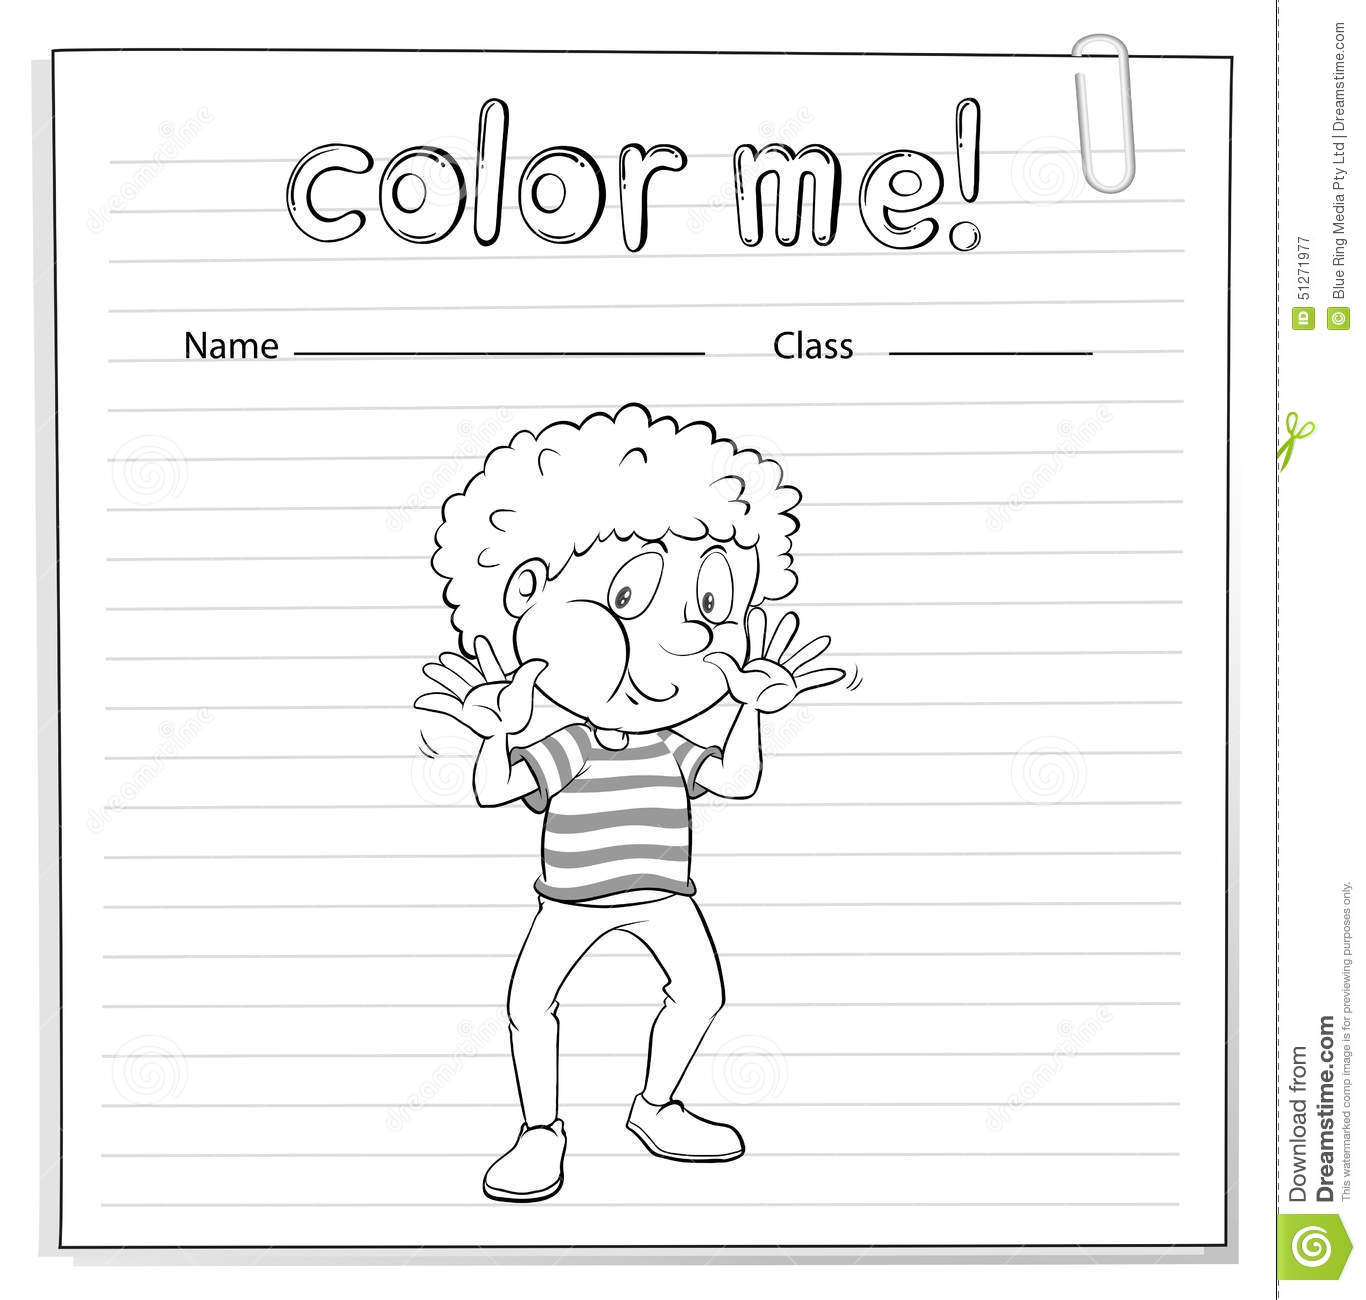 Coloring Worksheet With A Boy Stock Vector